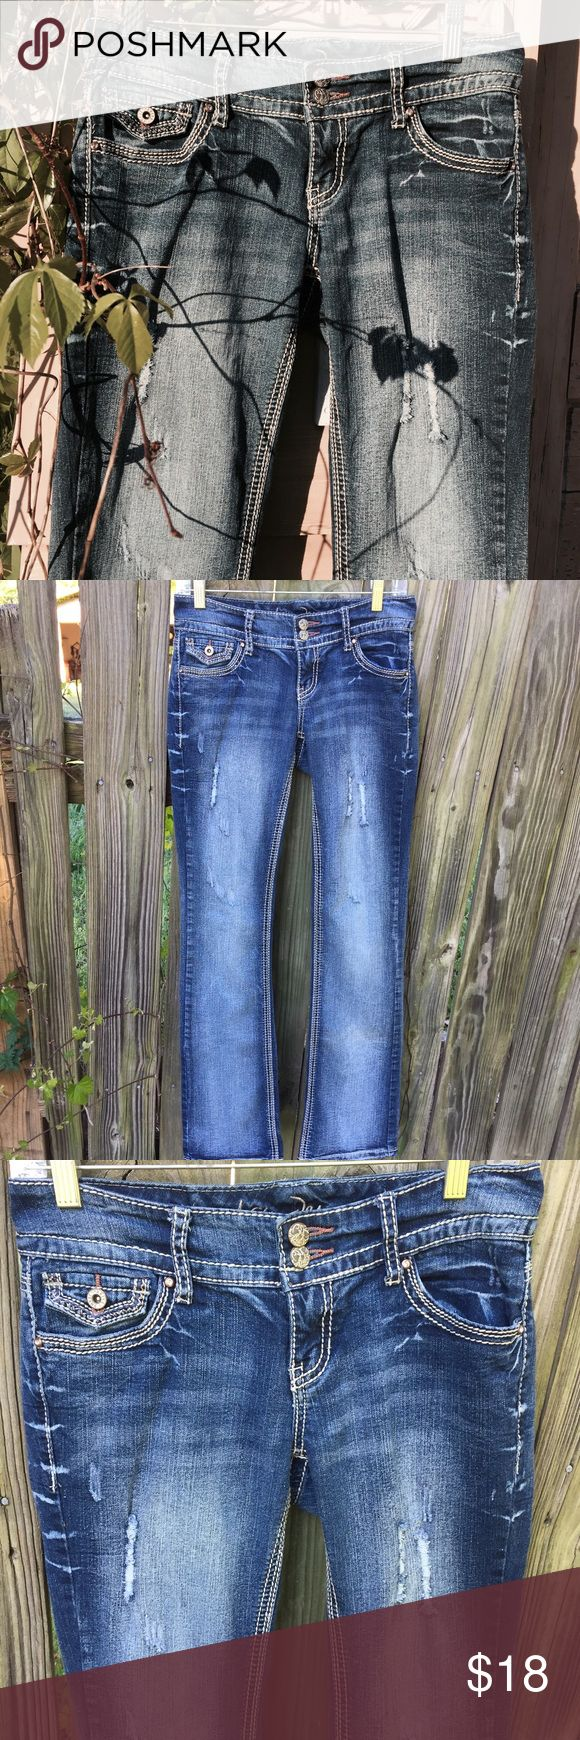 Ariya Women's distressed Jeans Distressed denim, love it, it's a definite closet staple for many different casual looks, these Ariya  jeans are in EUC, fabric is soft and comfortable, button pockets in the back Ariya Jeans Straight Leg